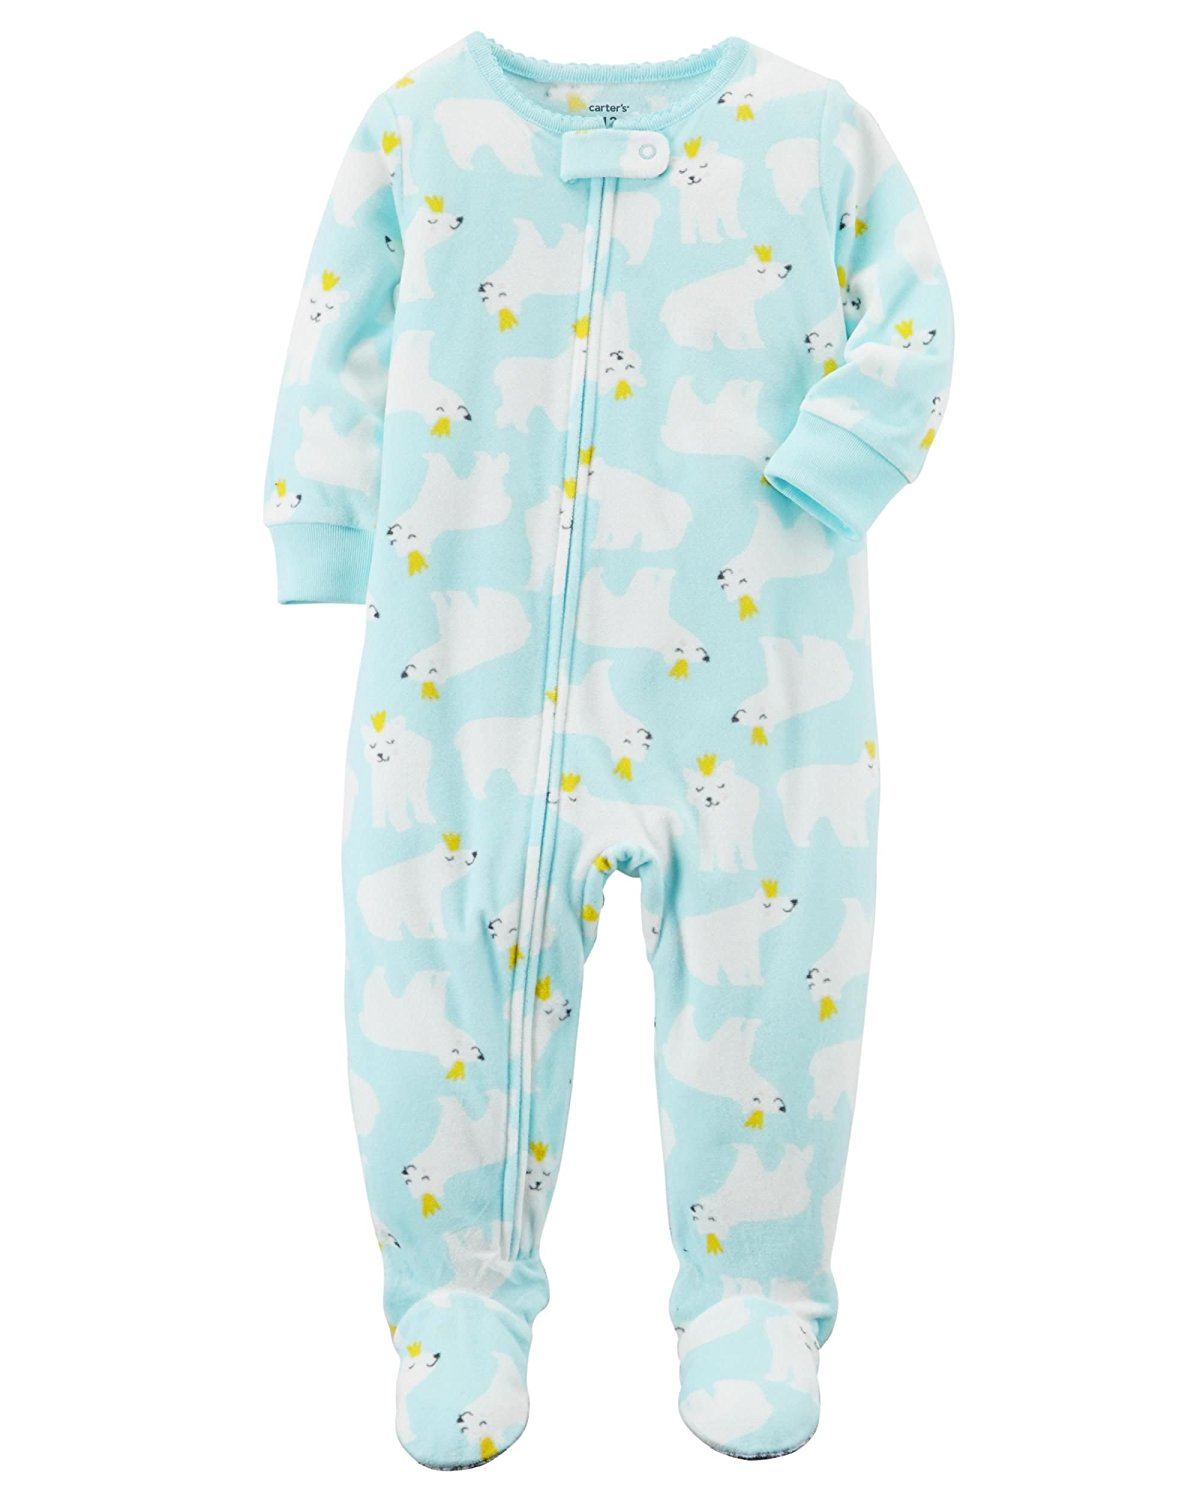 Our extensive collection of Baby Bear Pajamas in a wide variety of styles allow you to wear your passion around the house. Turn your interests, causes or fan favorites into a killer comfy pajama set. At CafePress, we have jammies for everyone.